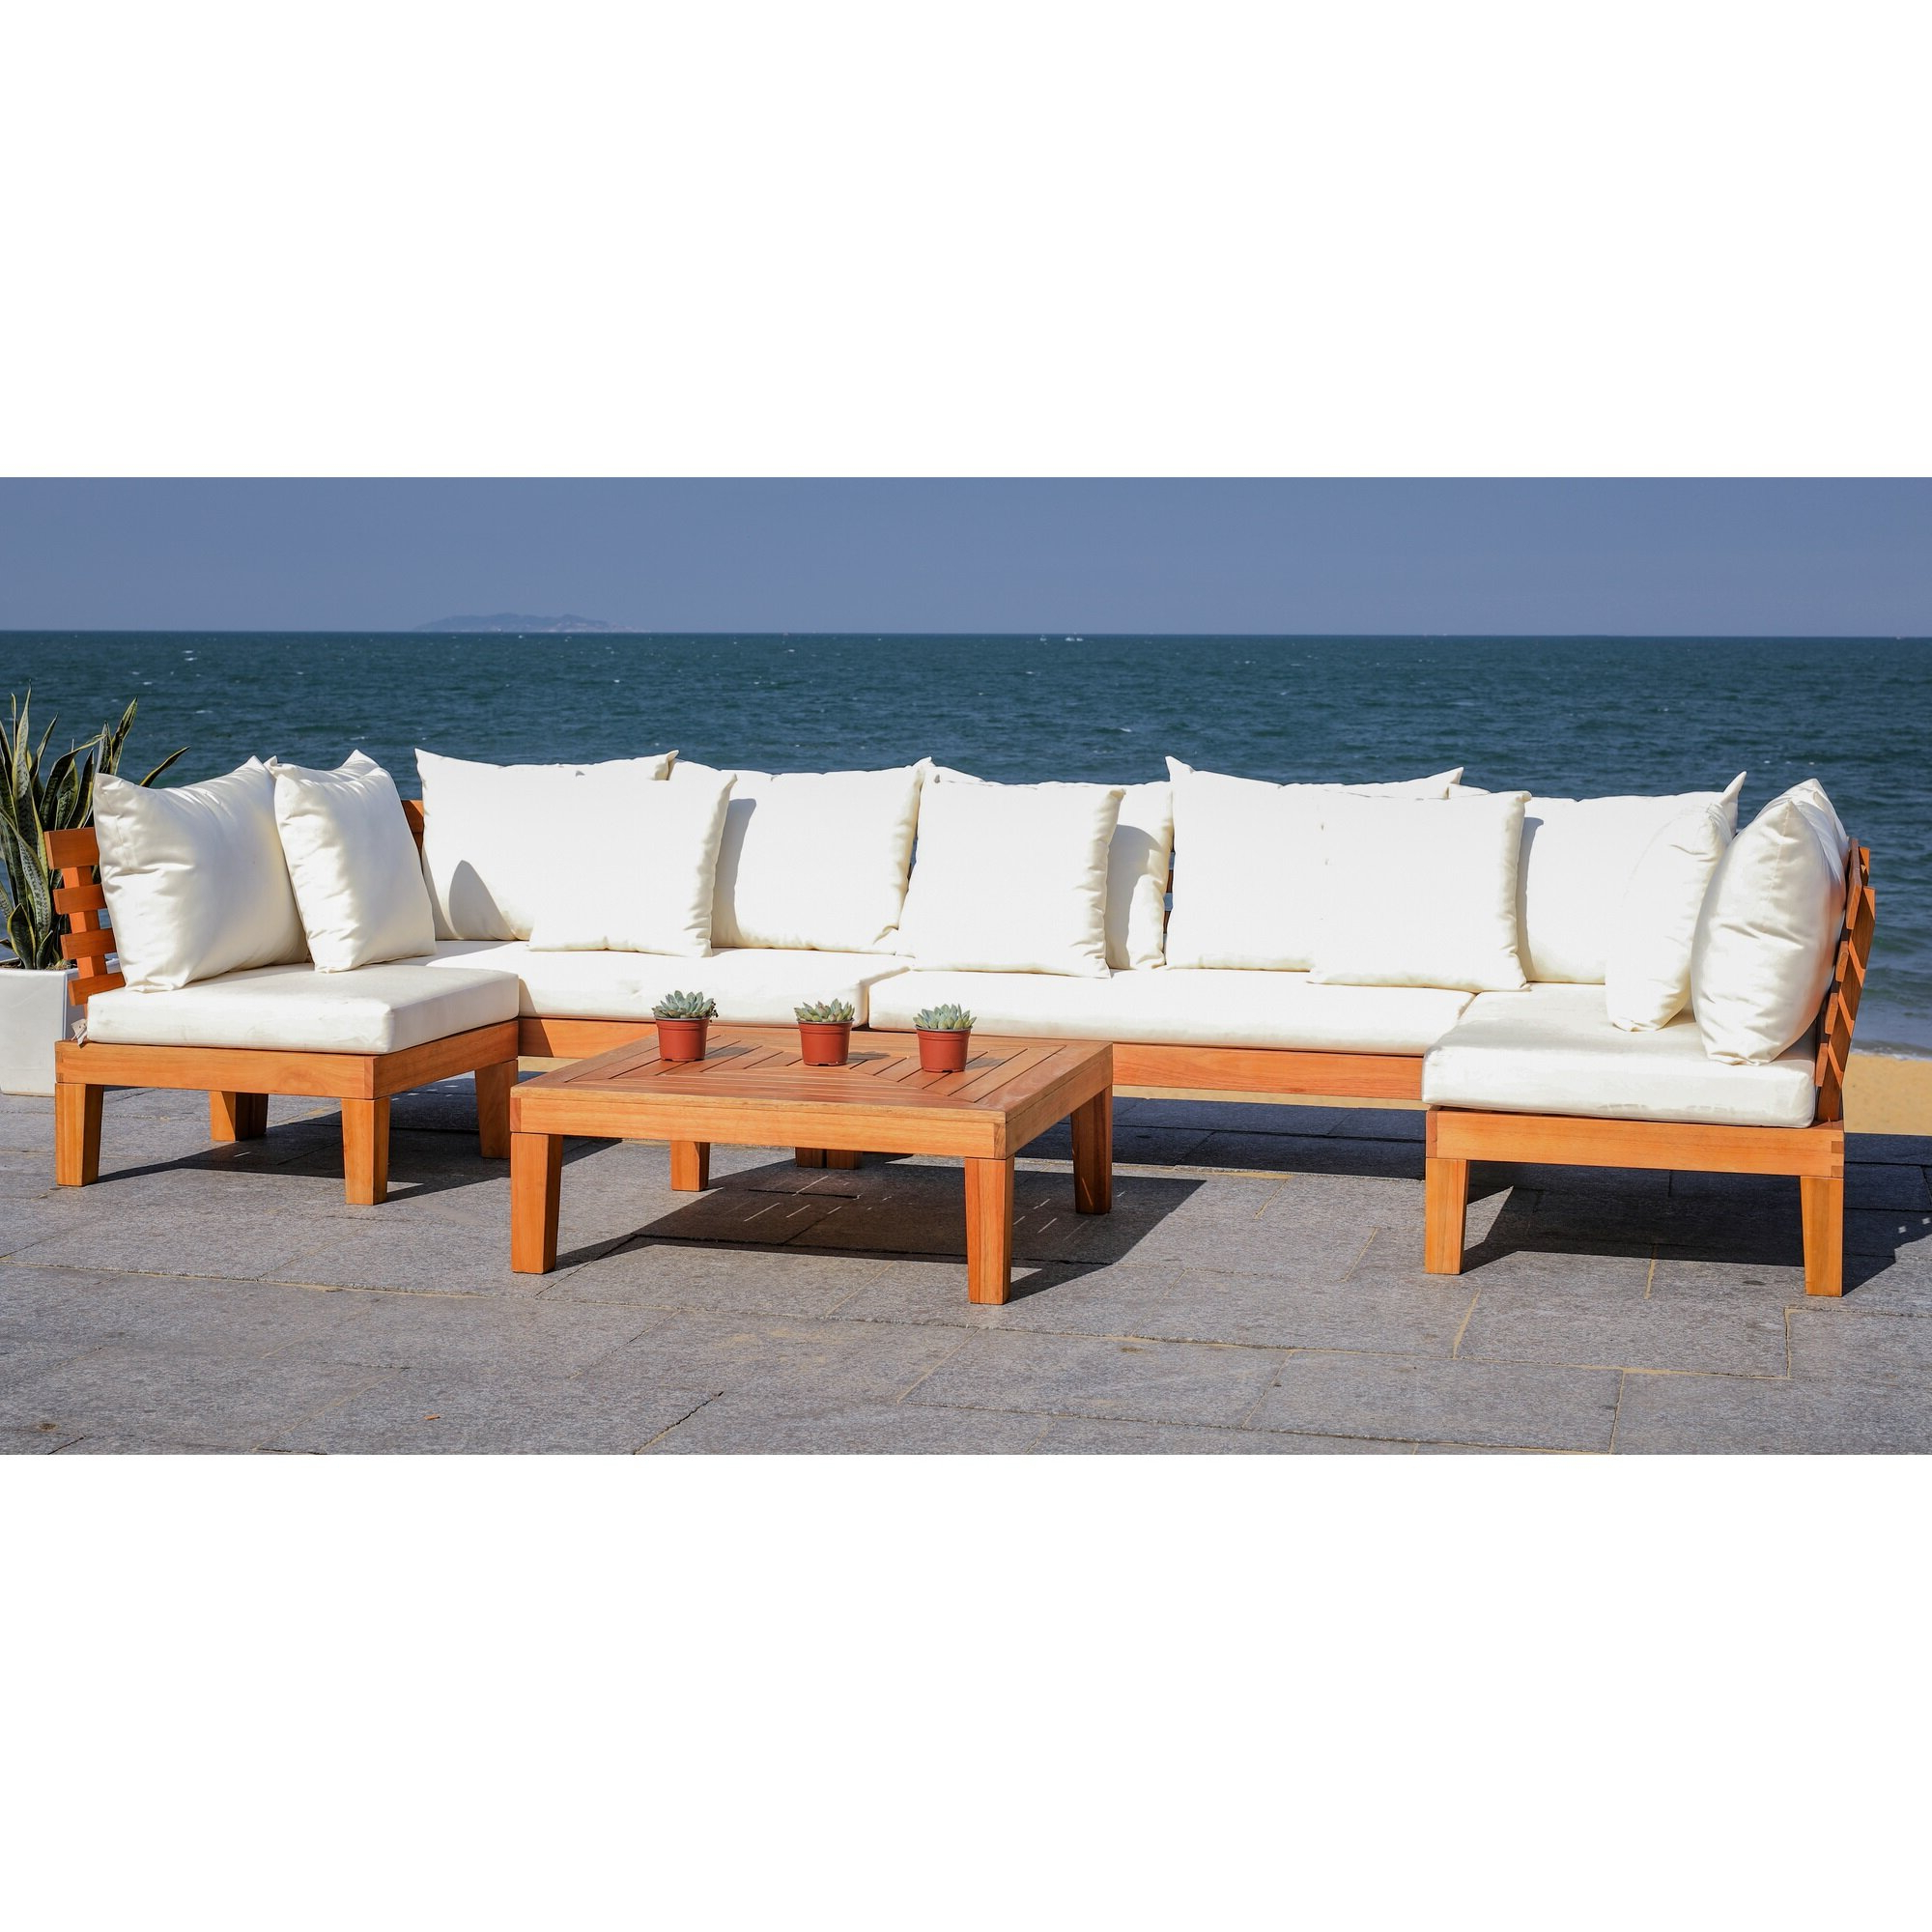 Greta Living Patio Sectional With Cushions Intended For Newest Brecht Patio Sectionals With Cushions (Gallery 5 of 25)